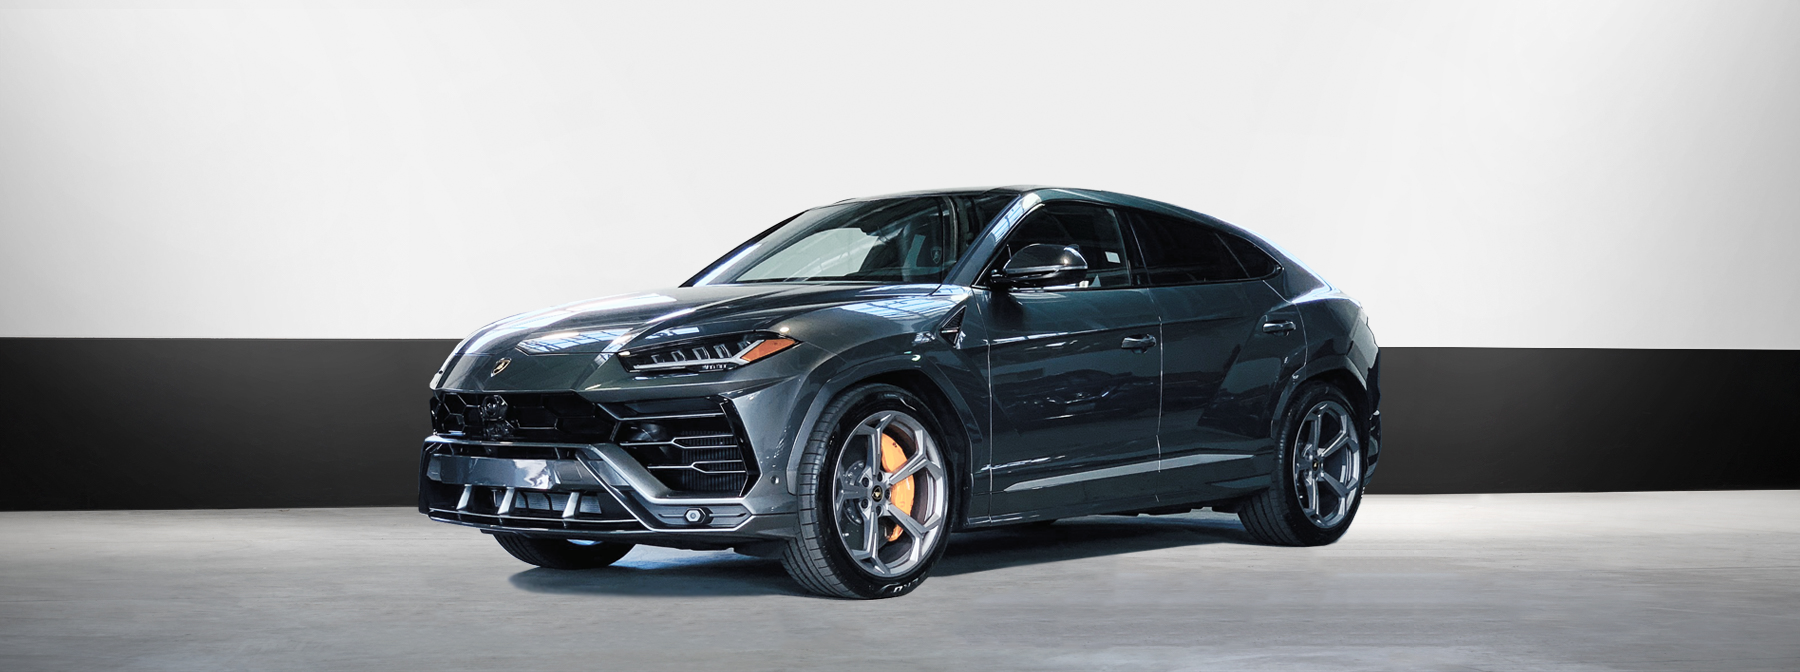 Rent A Lamborghini Urus In Los Angeles Bw Car Rental